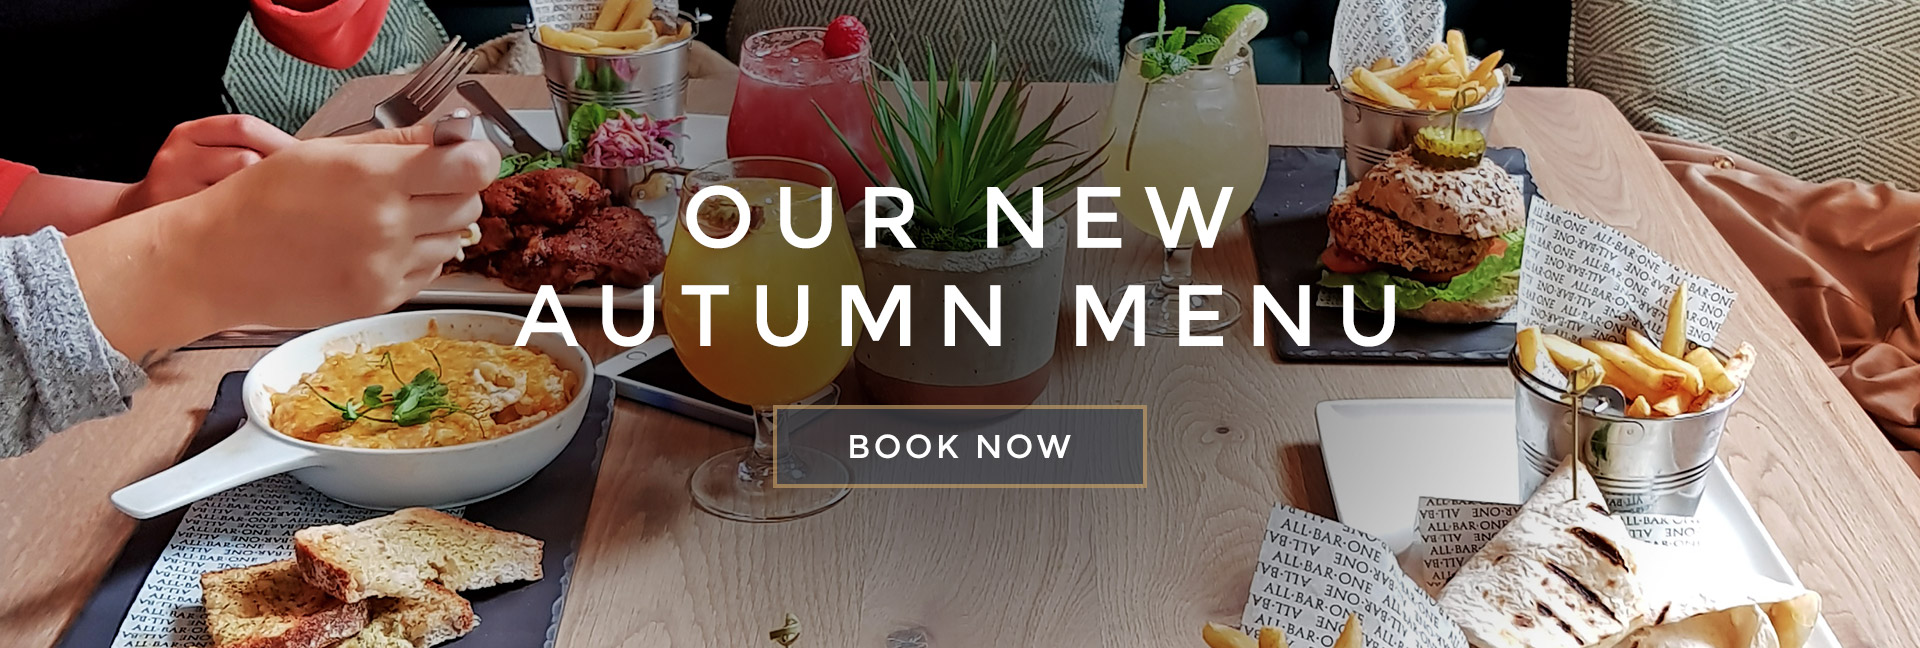 Our new Autumn menu at All Bar One Milton Keynes - Book now